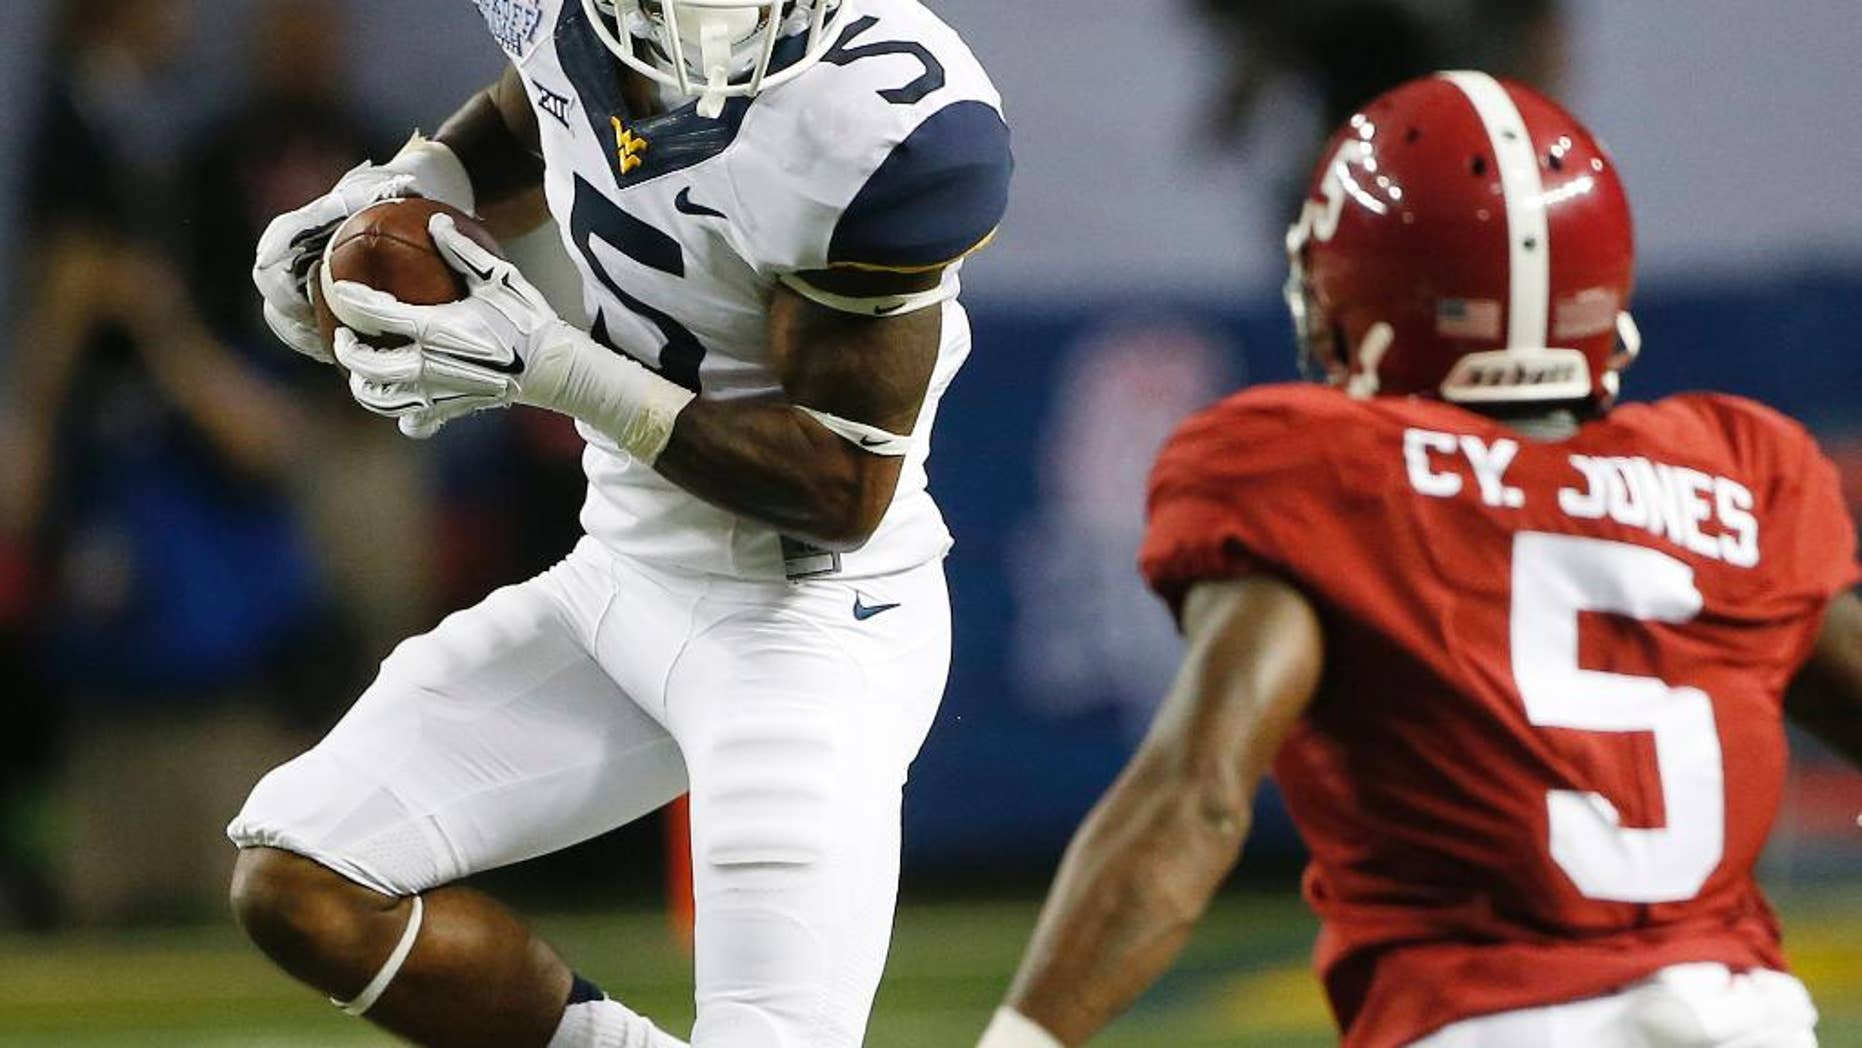 West Virginia wide receiver Mario Alford (5) makes a catch as Alabama defensive back Cyrus Jones (5) defends during the first half of an NCAA college football game Saturday, Aug. 30, 2014, in Atlanta.  (AP Photo/John Bazemore)